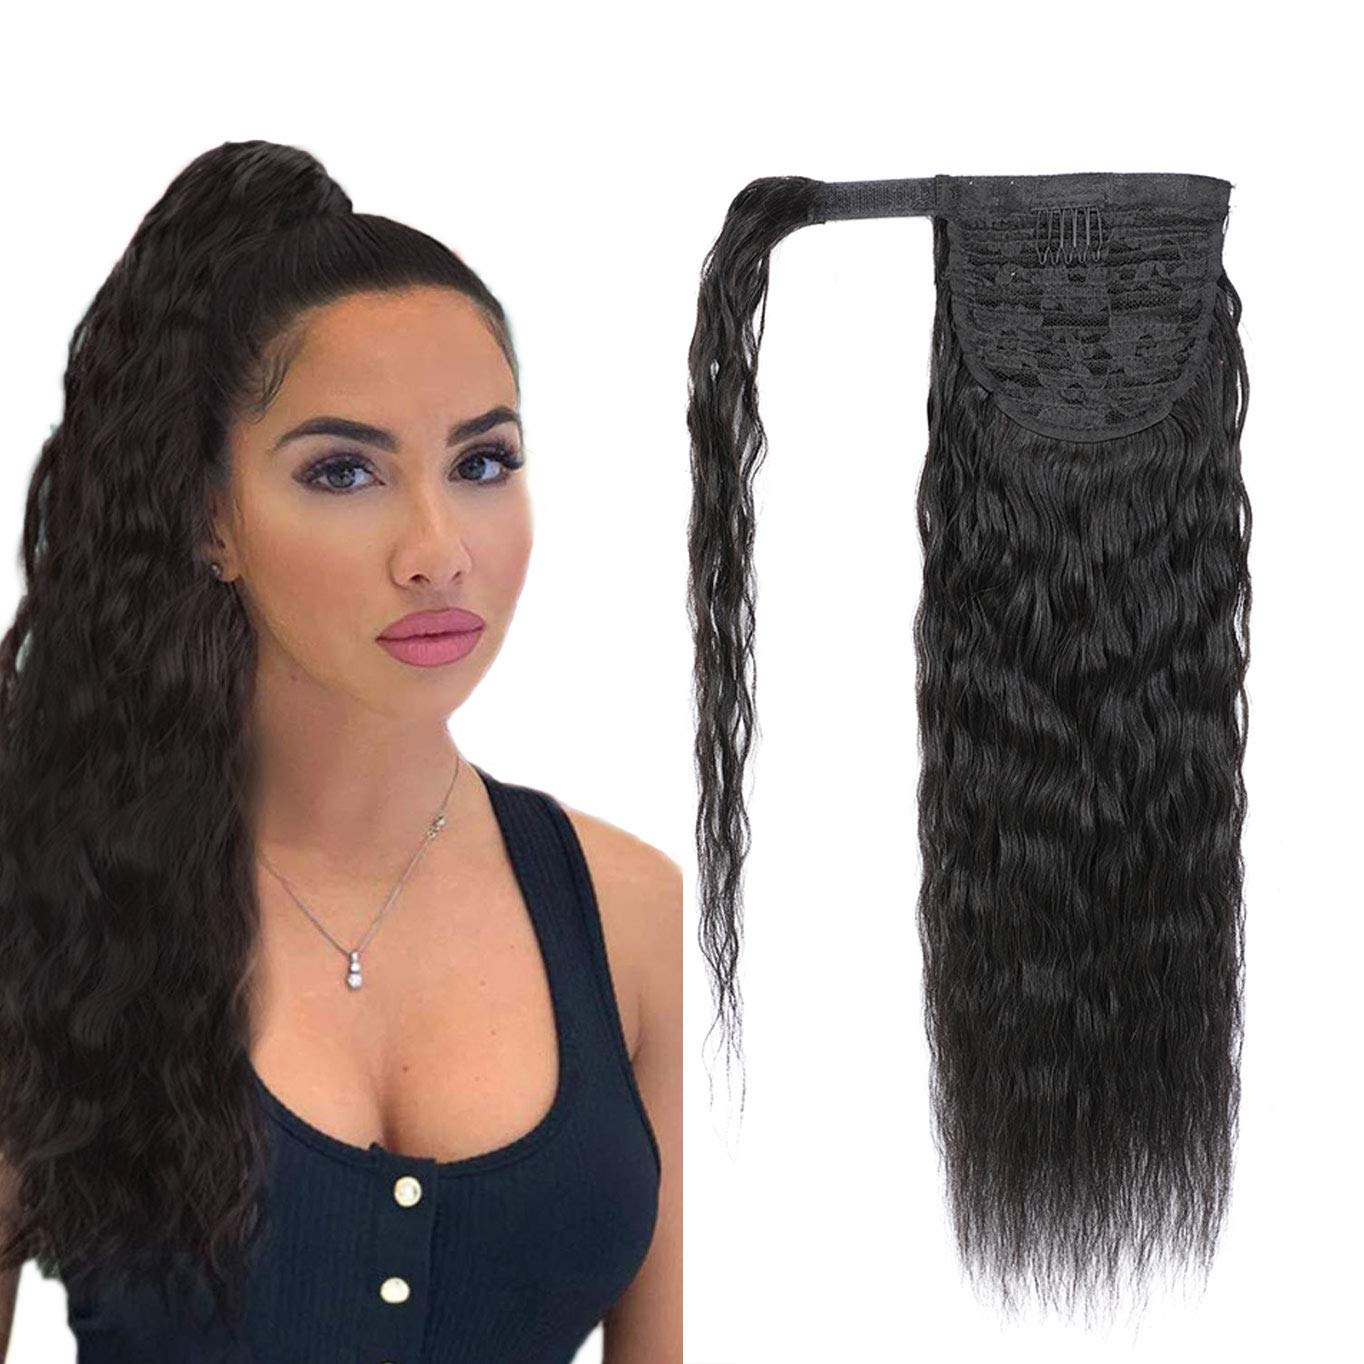 Magic Paste Wrap Around Ponytail Hair Extensions Human Hair Long Cown Wave 100% Real Remy Hair Pony Tails Hair Extensions For Women Natural Black (18 Inch, 120g)